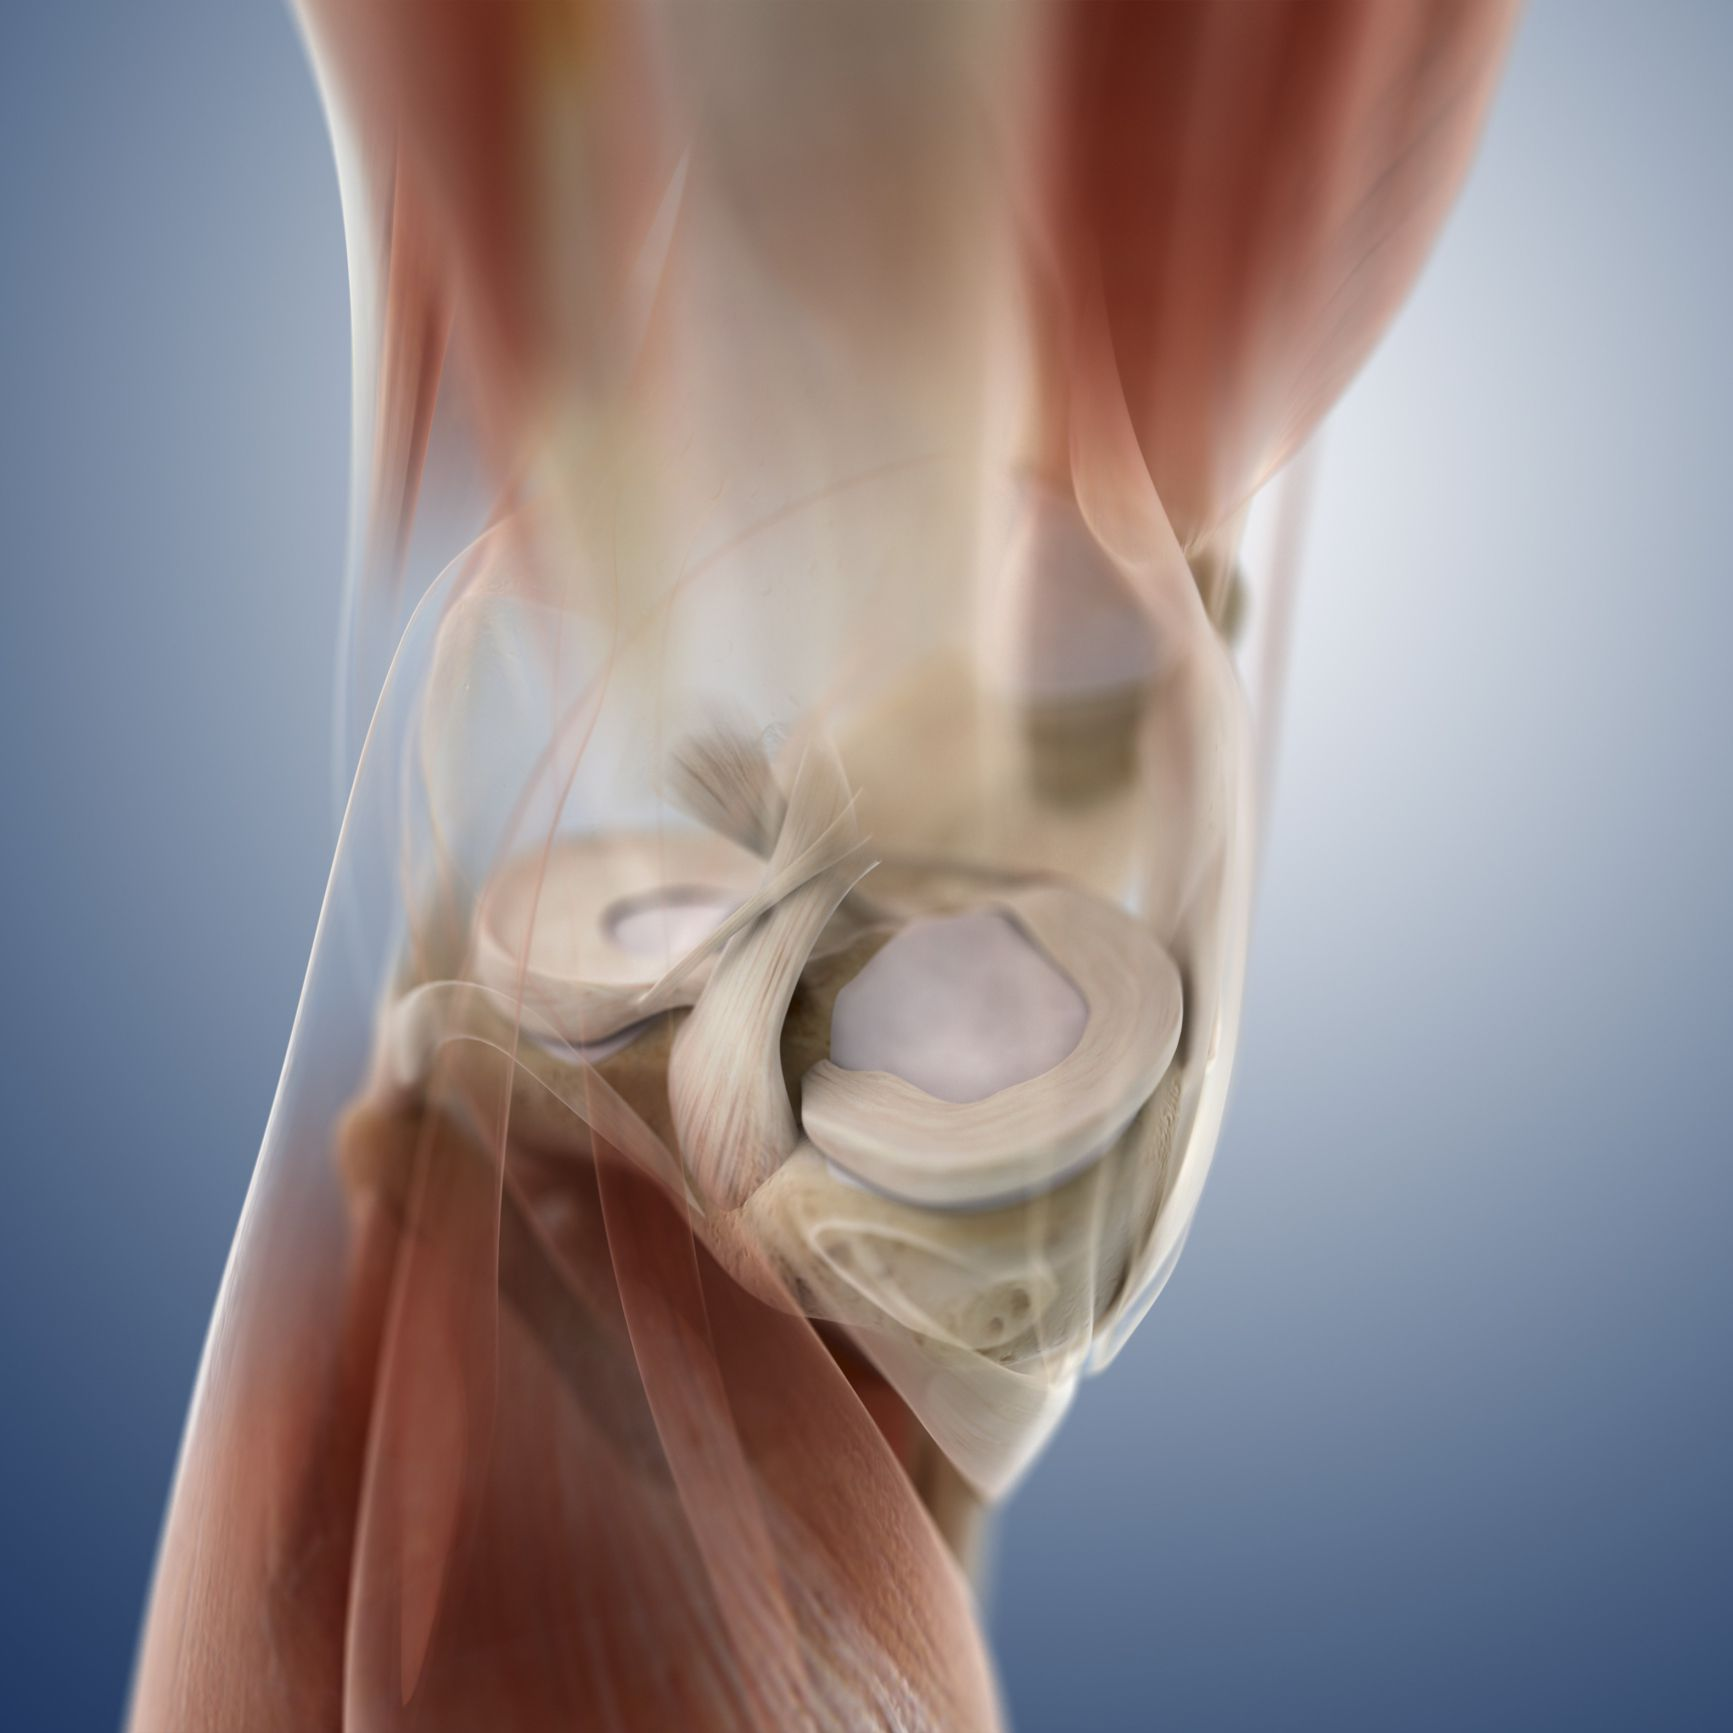 When Is A Meniscus Transplant An Option